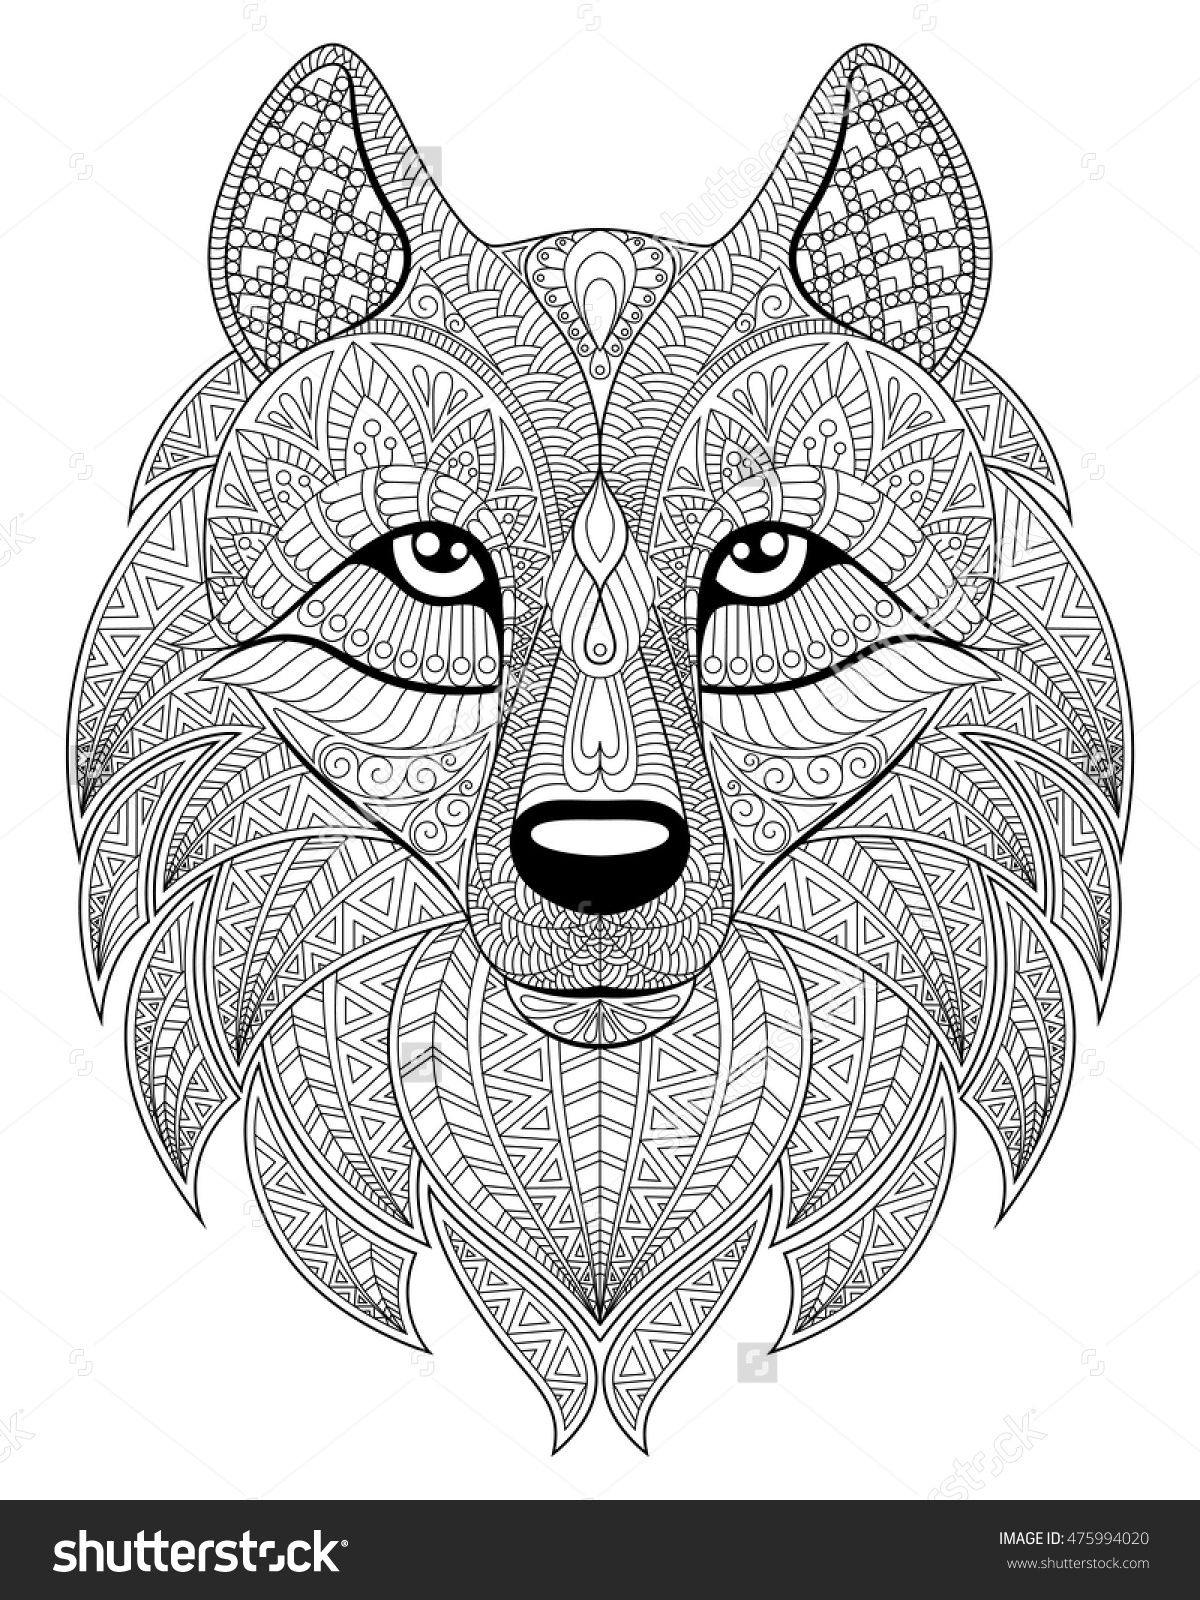 Pin On Adult Coloring Page